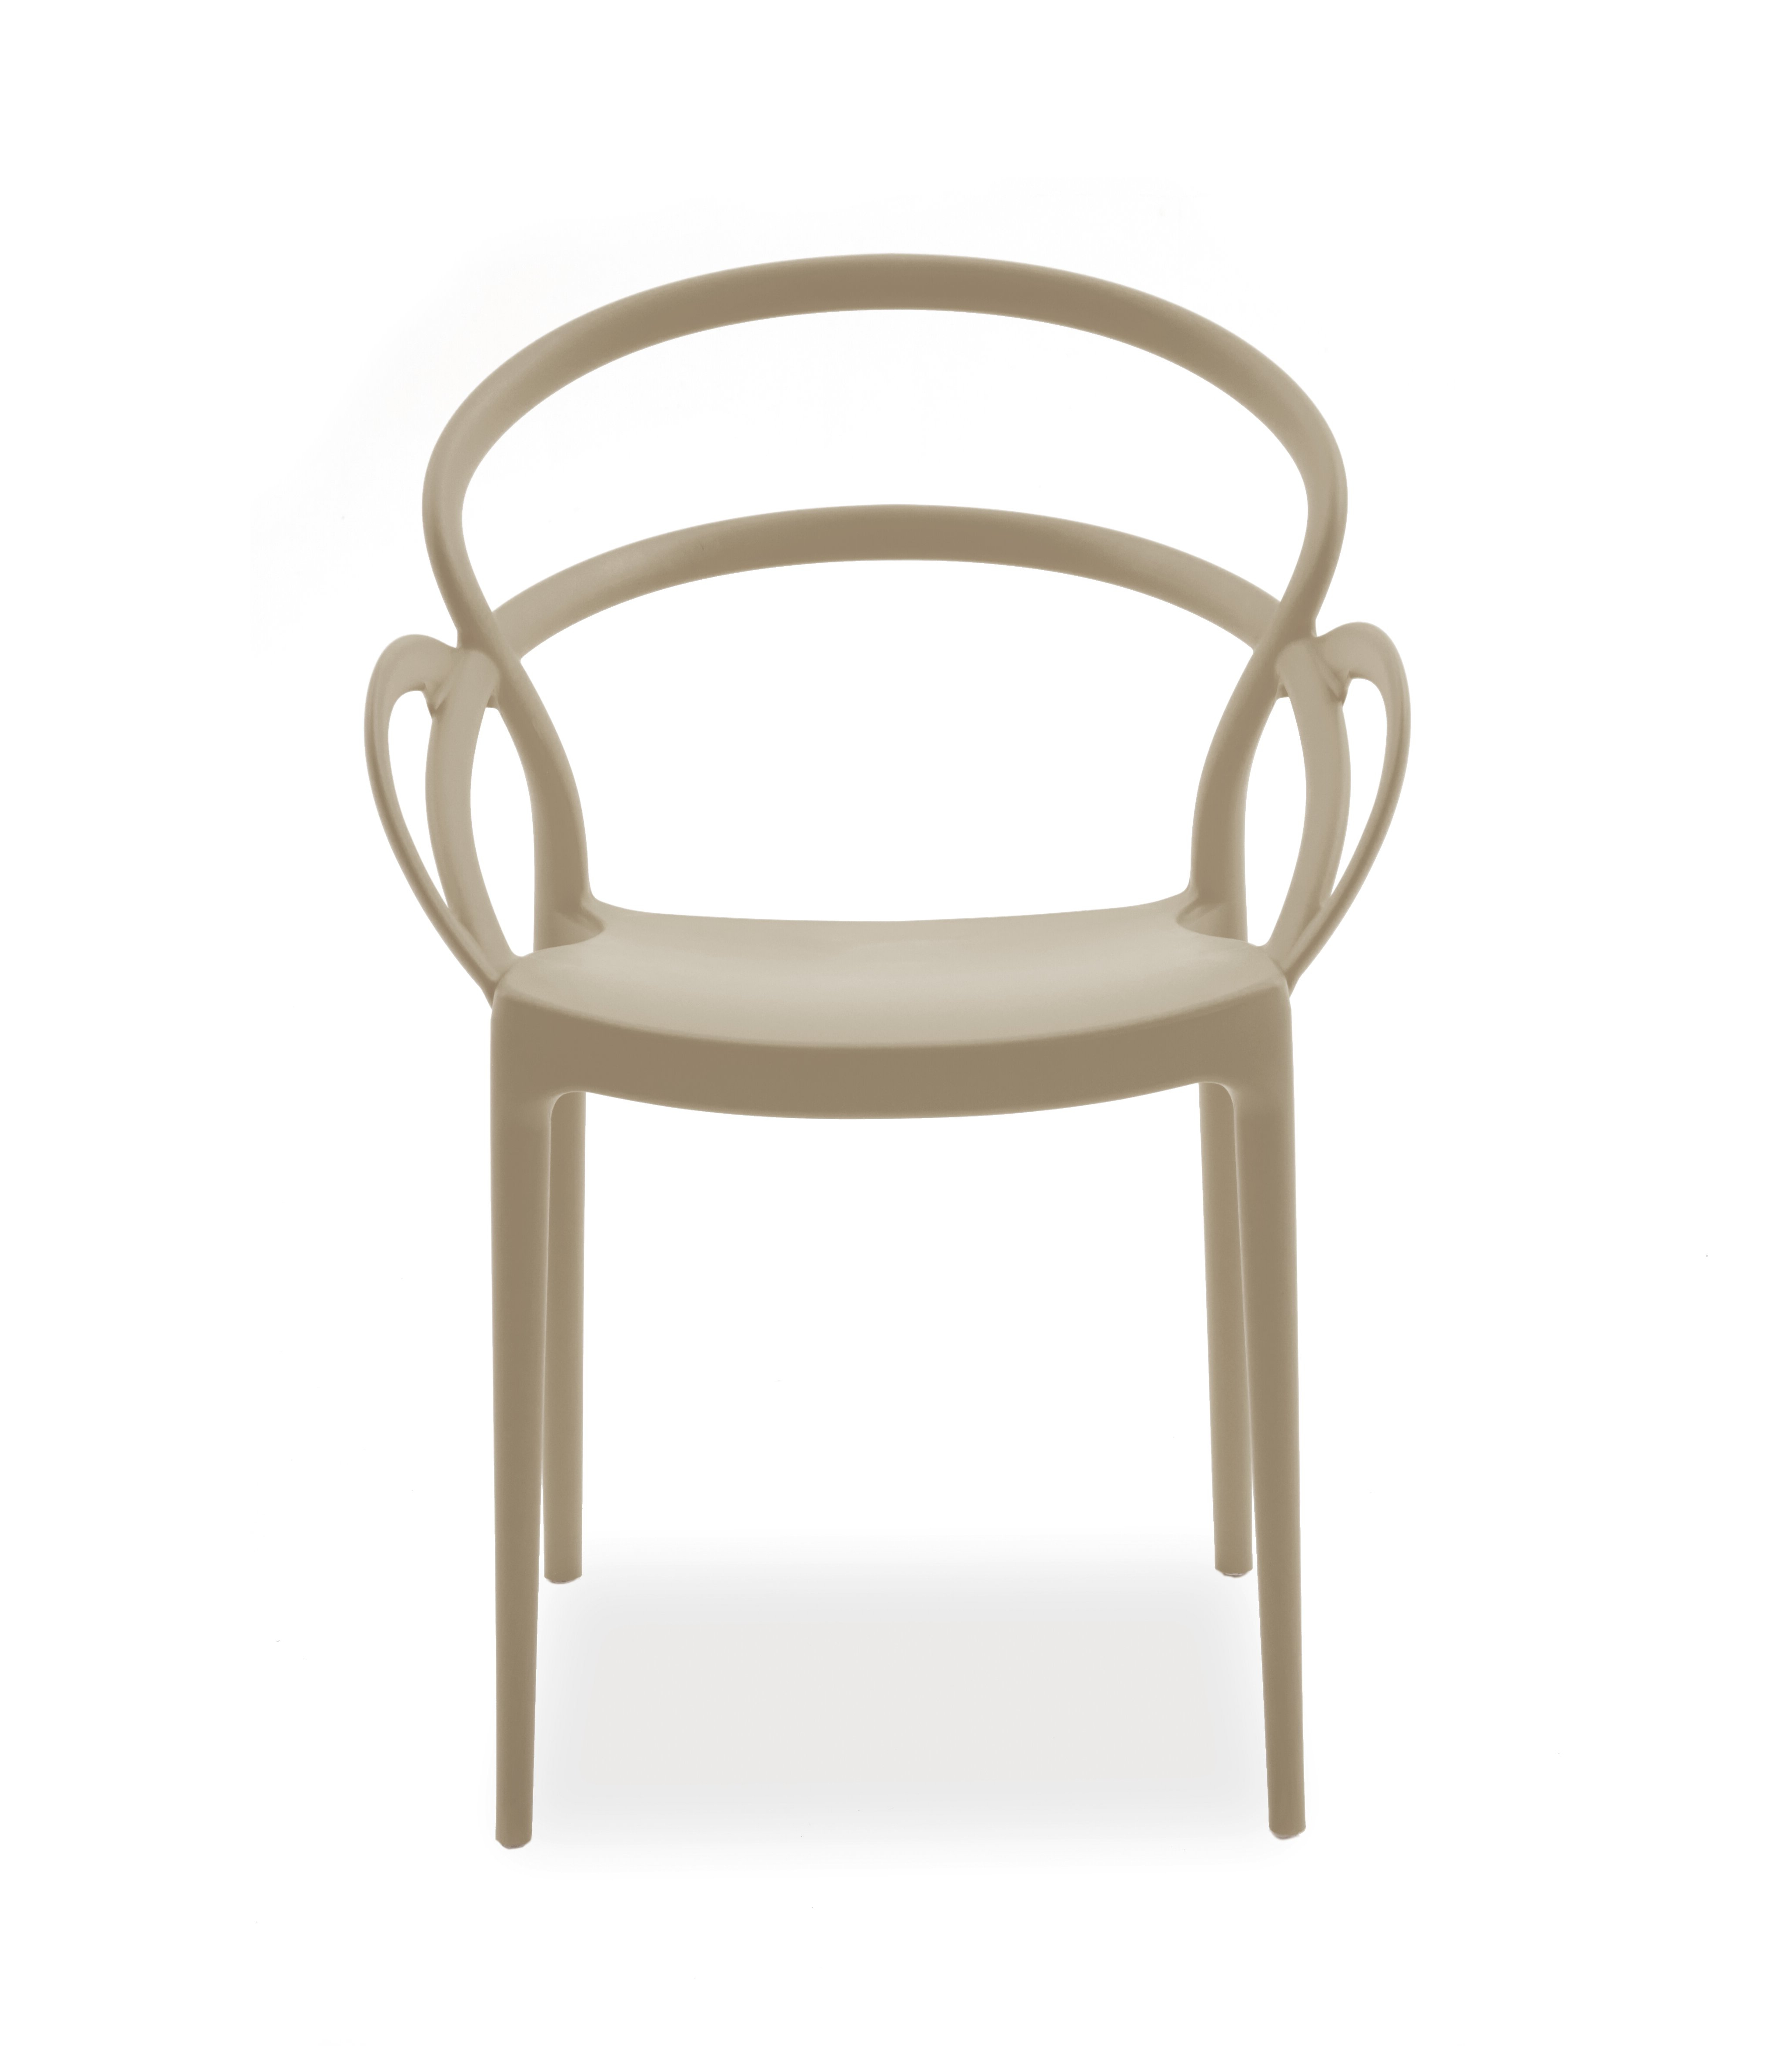 Tilda Stacking Patio Dining Chair With Recent Tilda Cantilever Umbrellas (View 15 of 20)